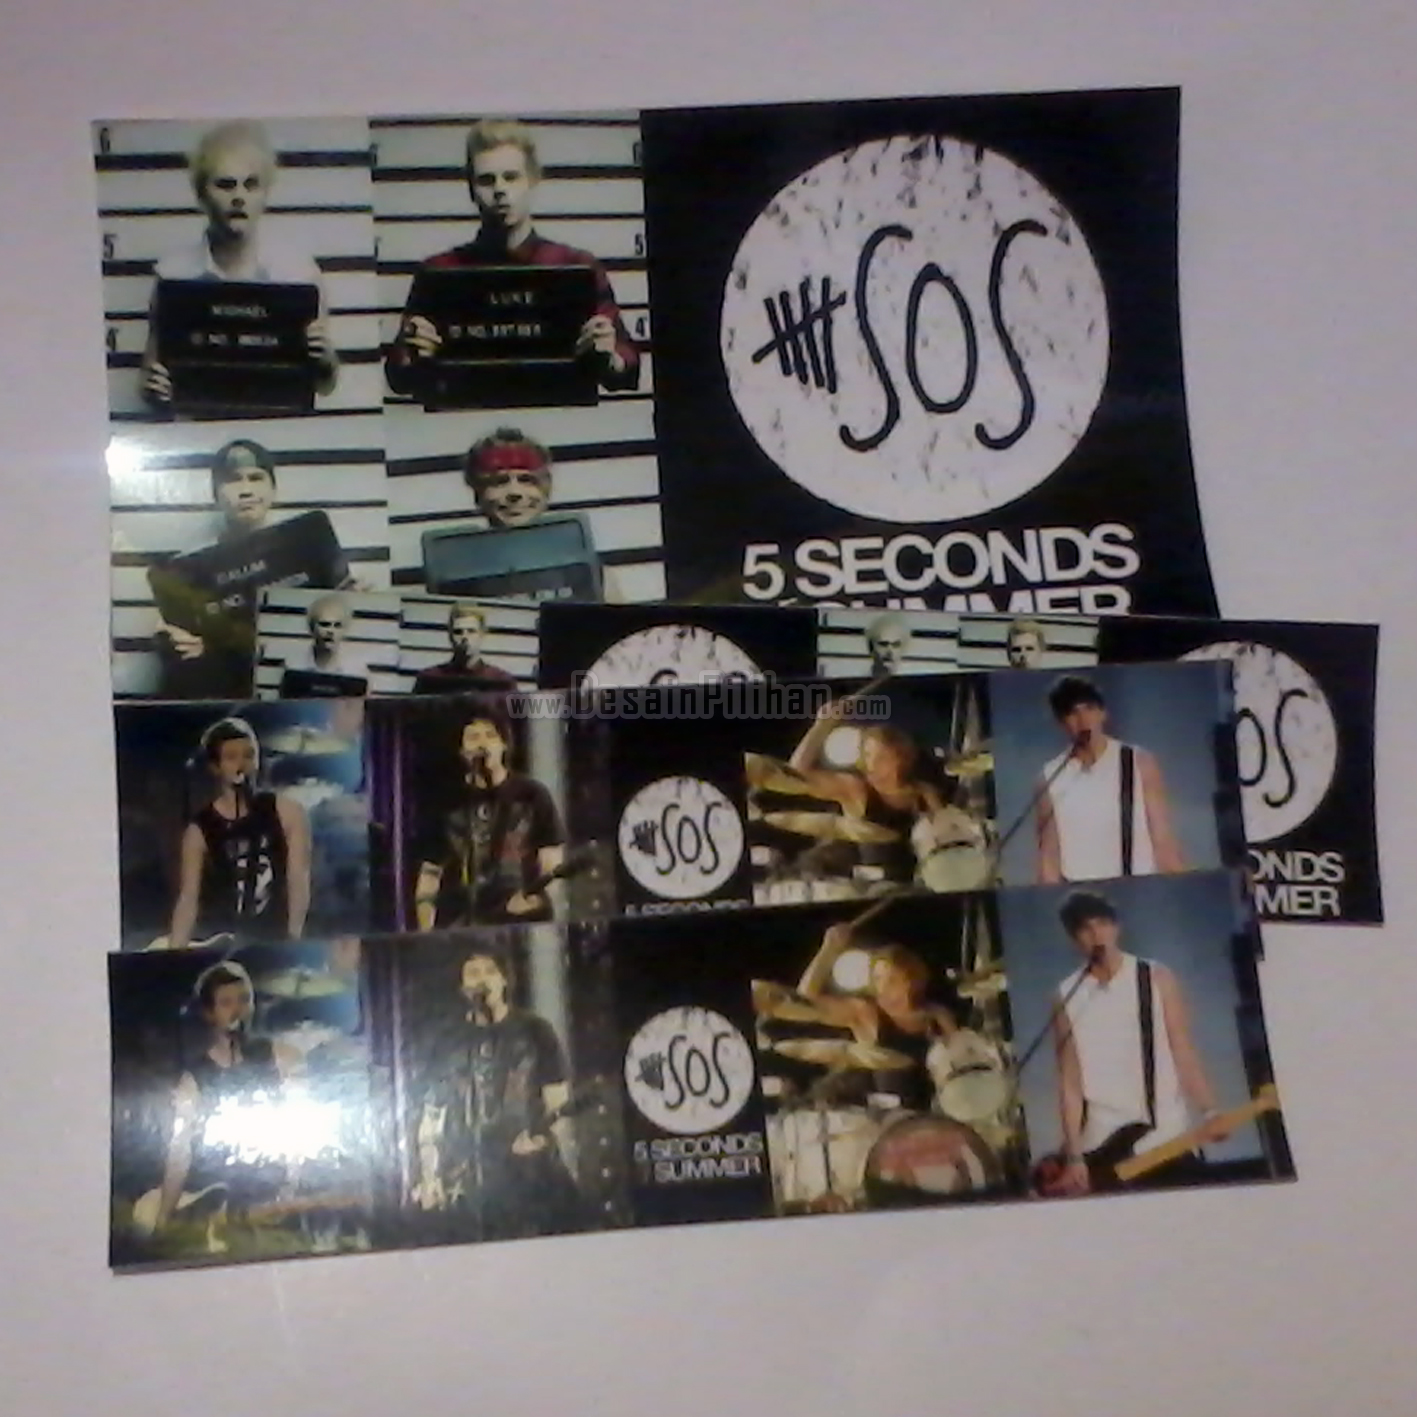 STICKER CUSTOM, STICKER SOS, STICKER 5 SECONDS SUMMER